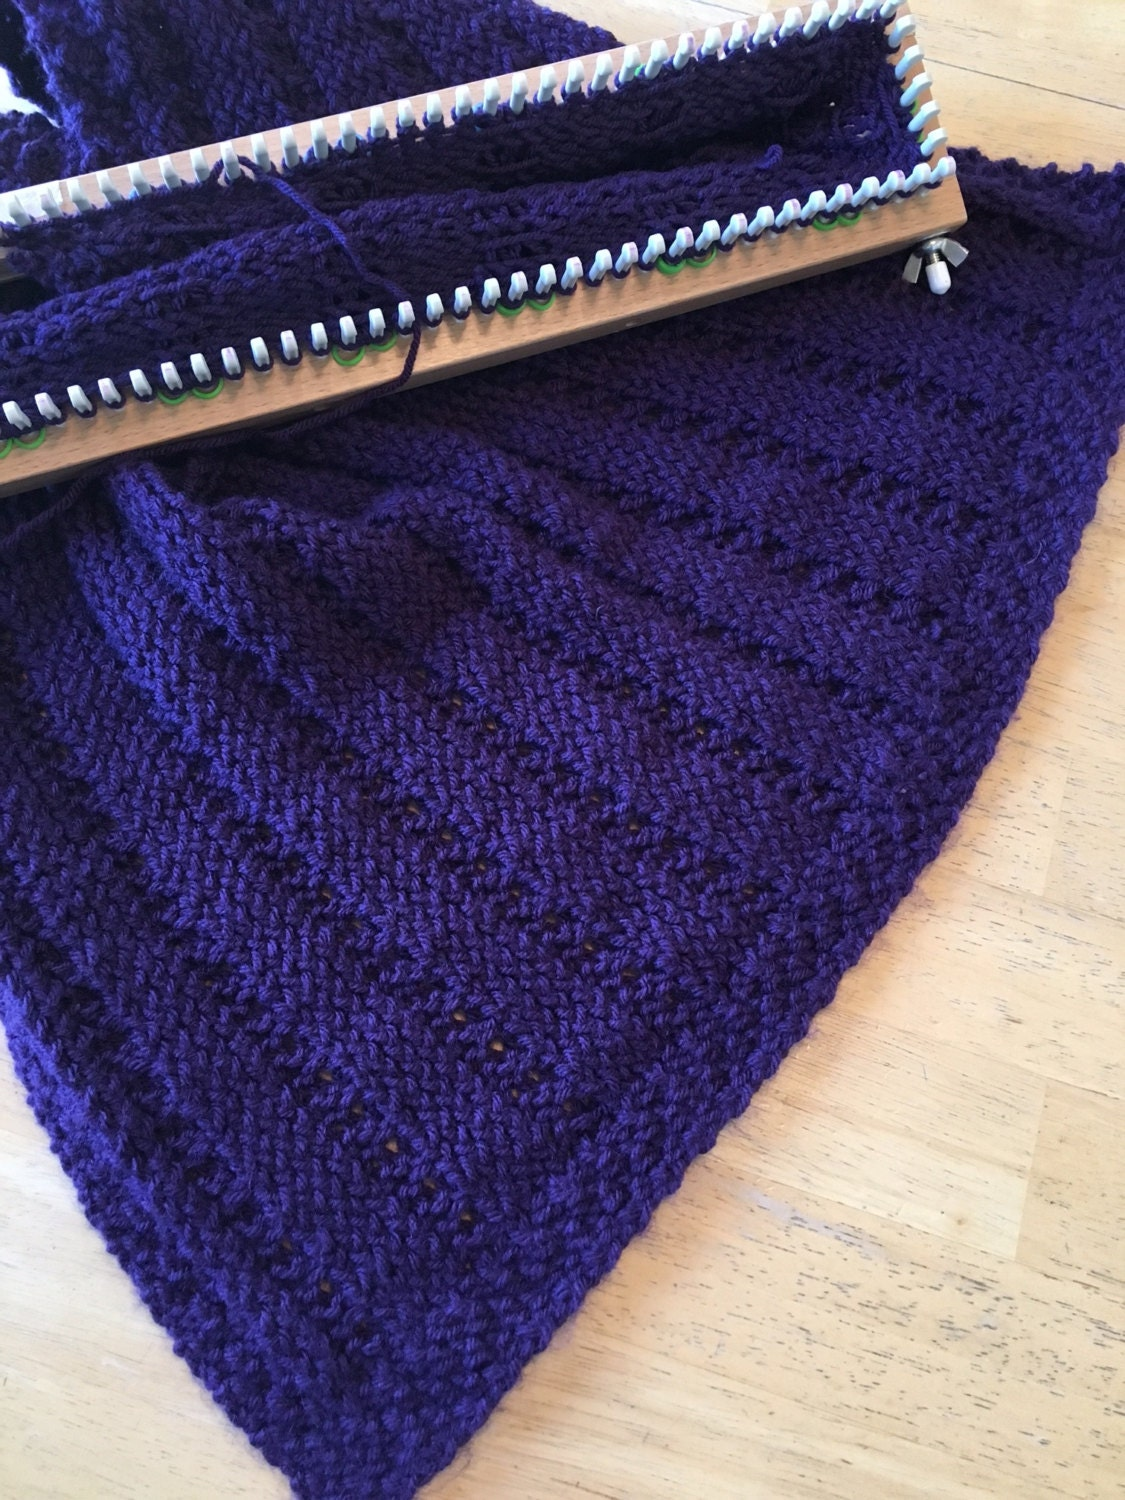 Resolutions Wrap - a loom knit pattern